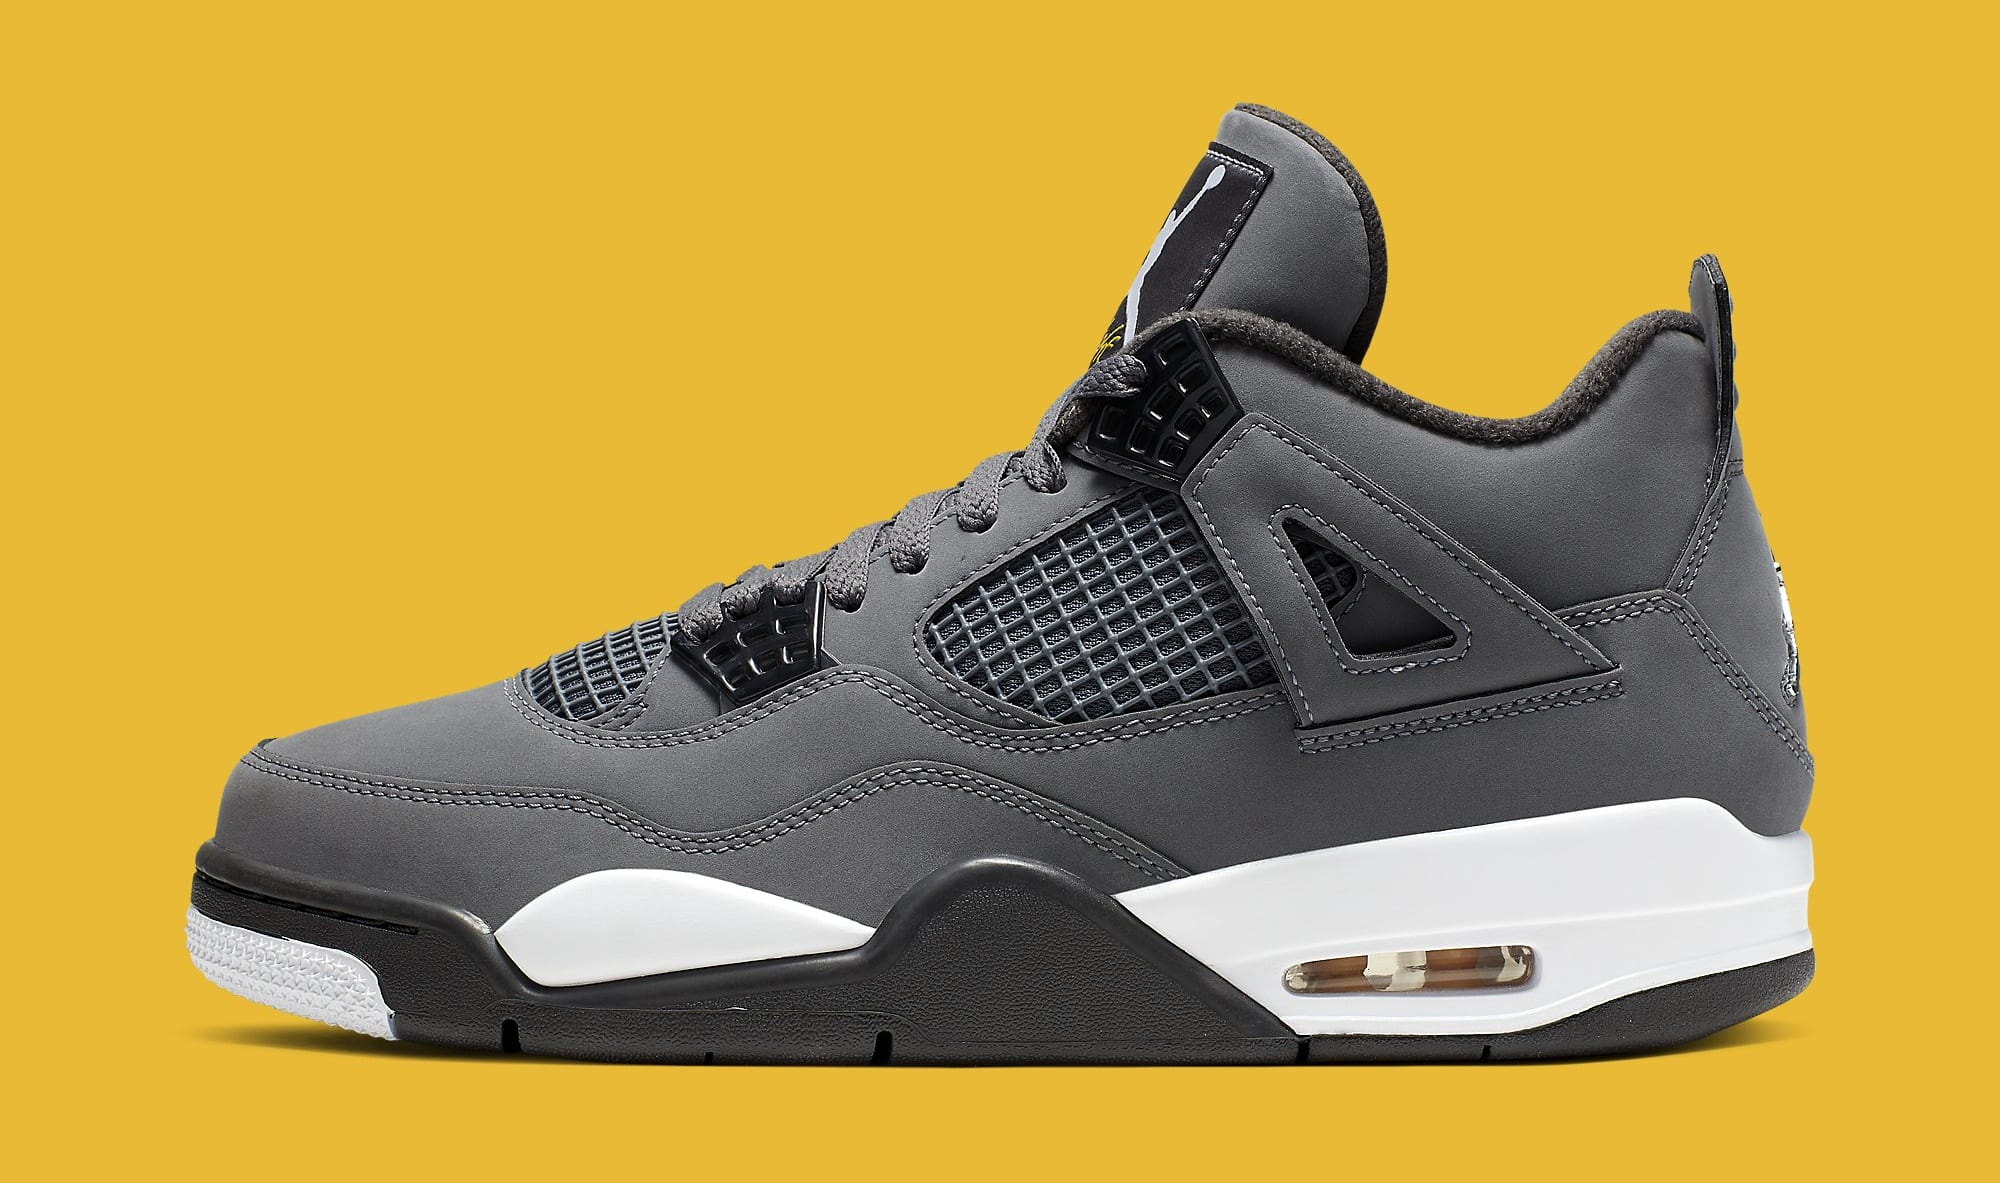 sneakers for cheap 7c2a7 8c632 Air Jordan 4 'Cool Grey' 2019 Release Date 308497-007 | Sole ...